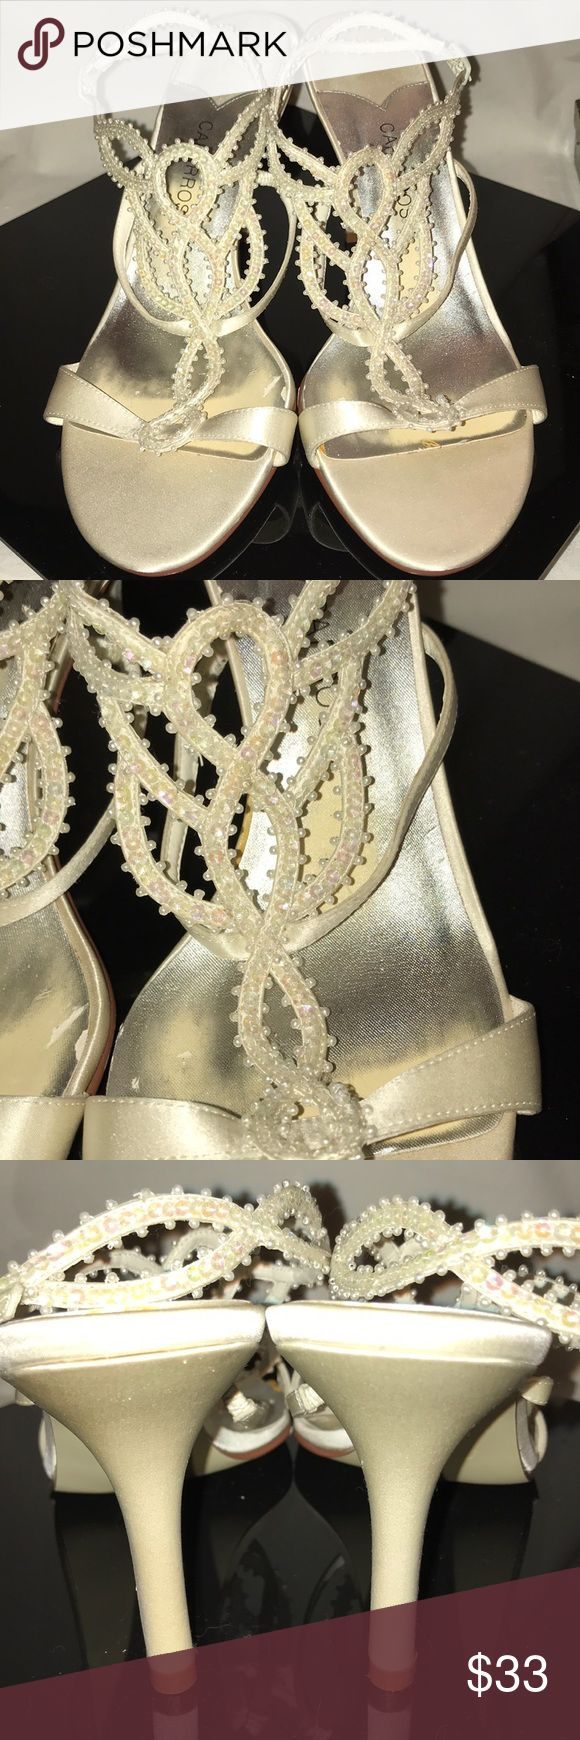 Caparros beaded, cream satin high heel sandals These beautiful ivory satin beaded sandals are reminiscent of Cinderella's shoes for the Ball (in sandal form!). They are very lightly worn, as evidenced by the leather soles.  8B. Caparros Shoes Heels